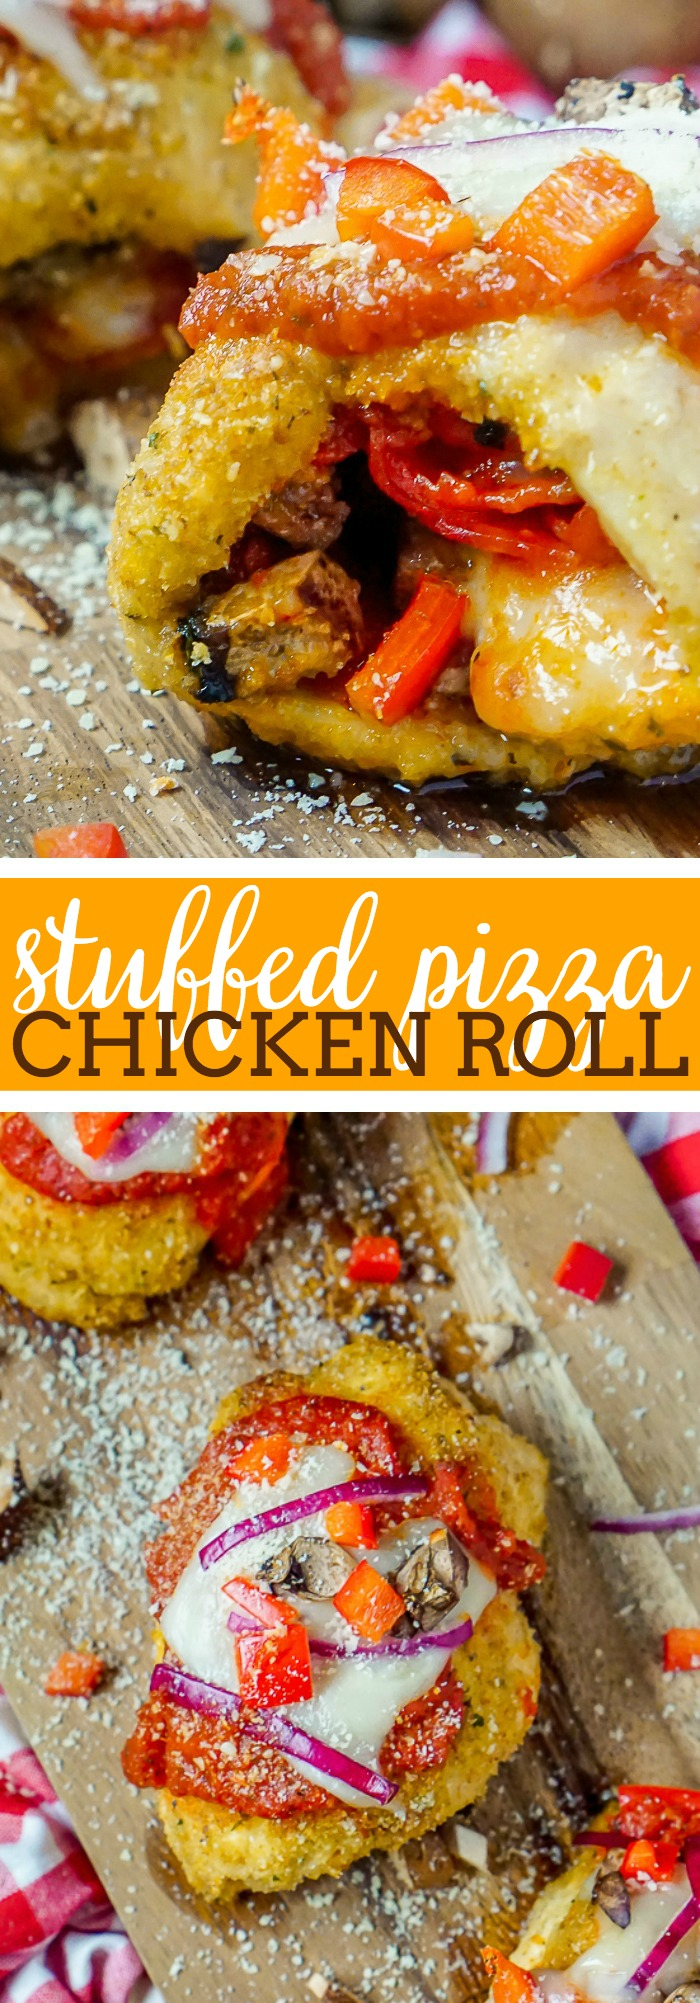 Stuffed Pizza Chicken Rolls Recipe - Add all your favorite toppings to this chicken roll up and enjoy a flavorful, healthier alternative to a slice of pizza! This stuffed chicken recipes makes an easy weeknight dinner!   The Love Nerds